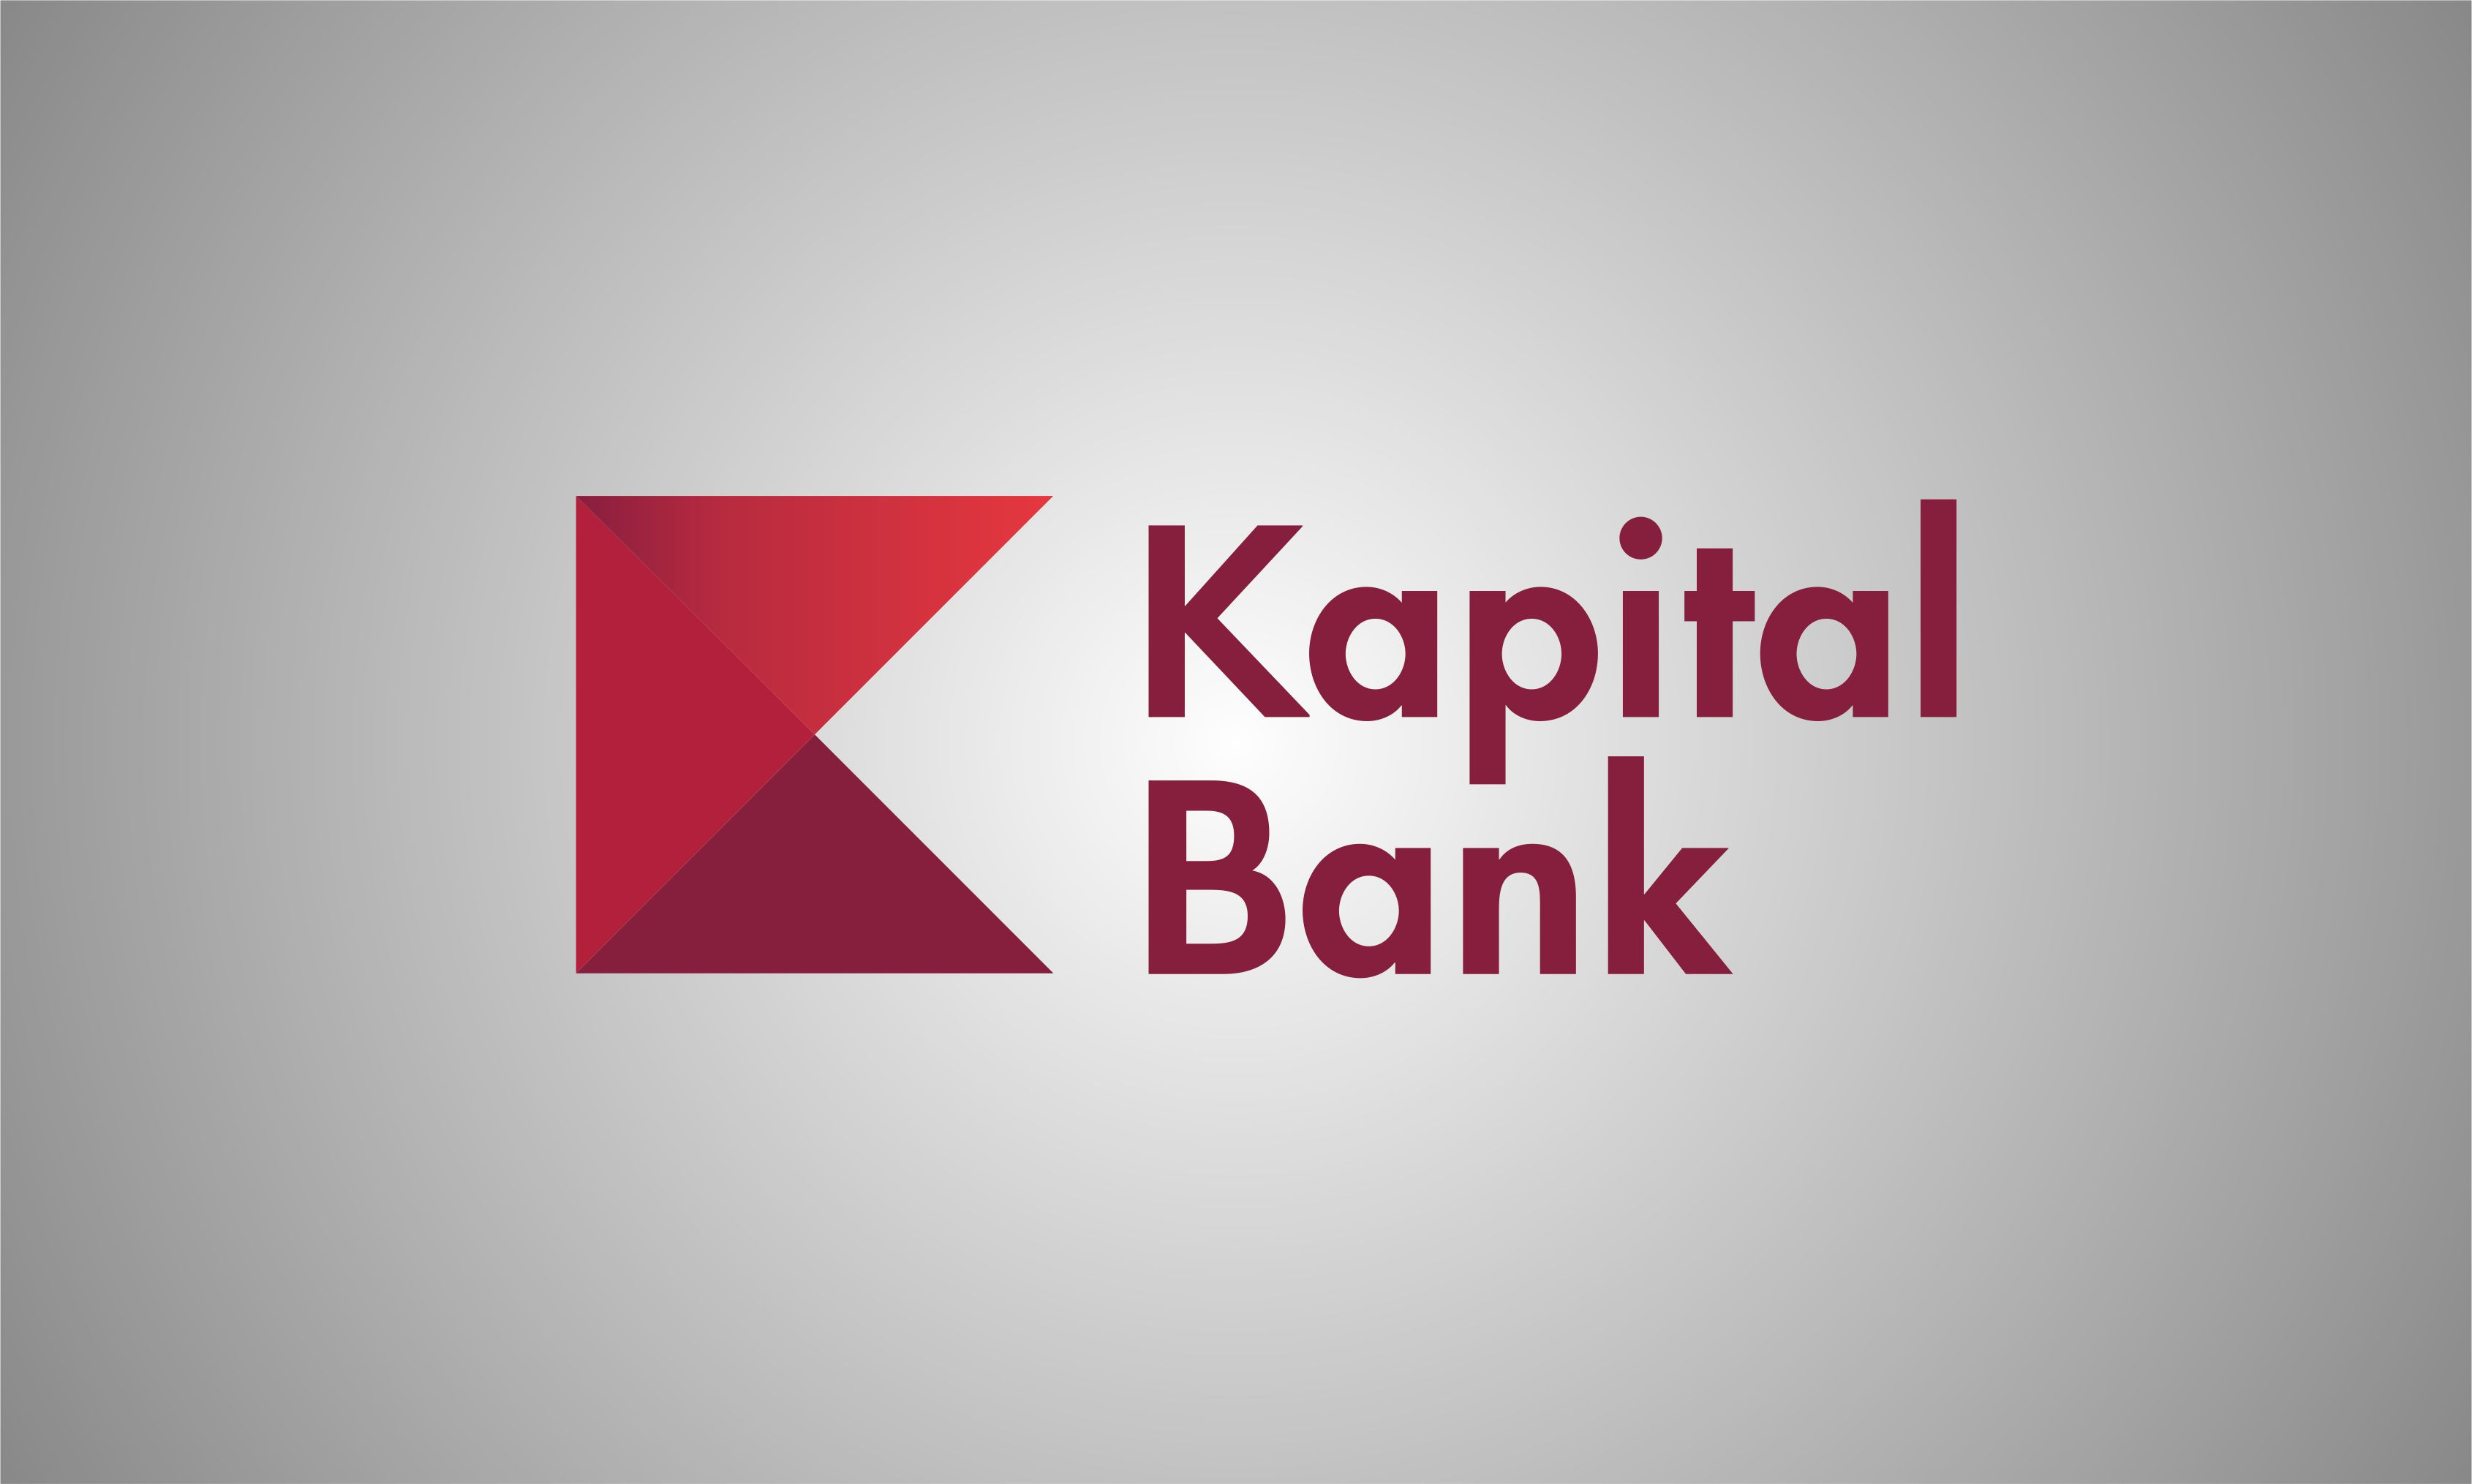 Kapital Bank has announced the financial results of 2020